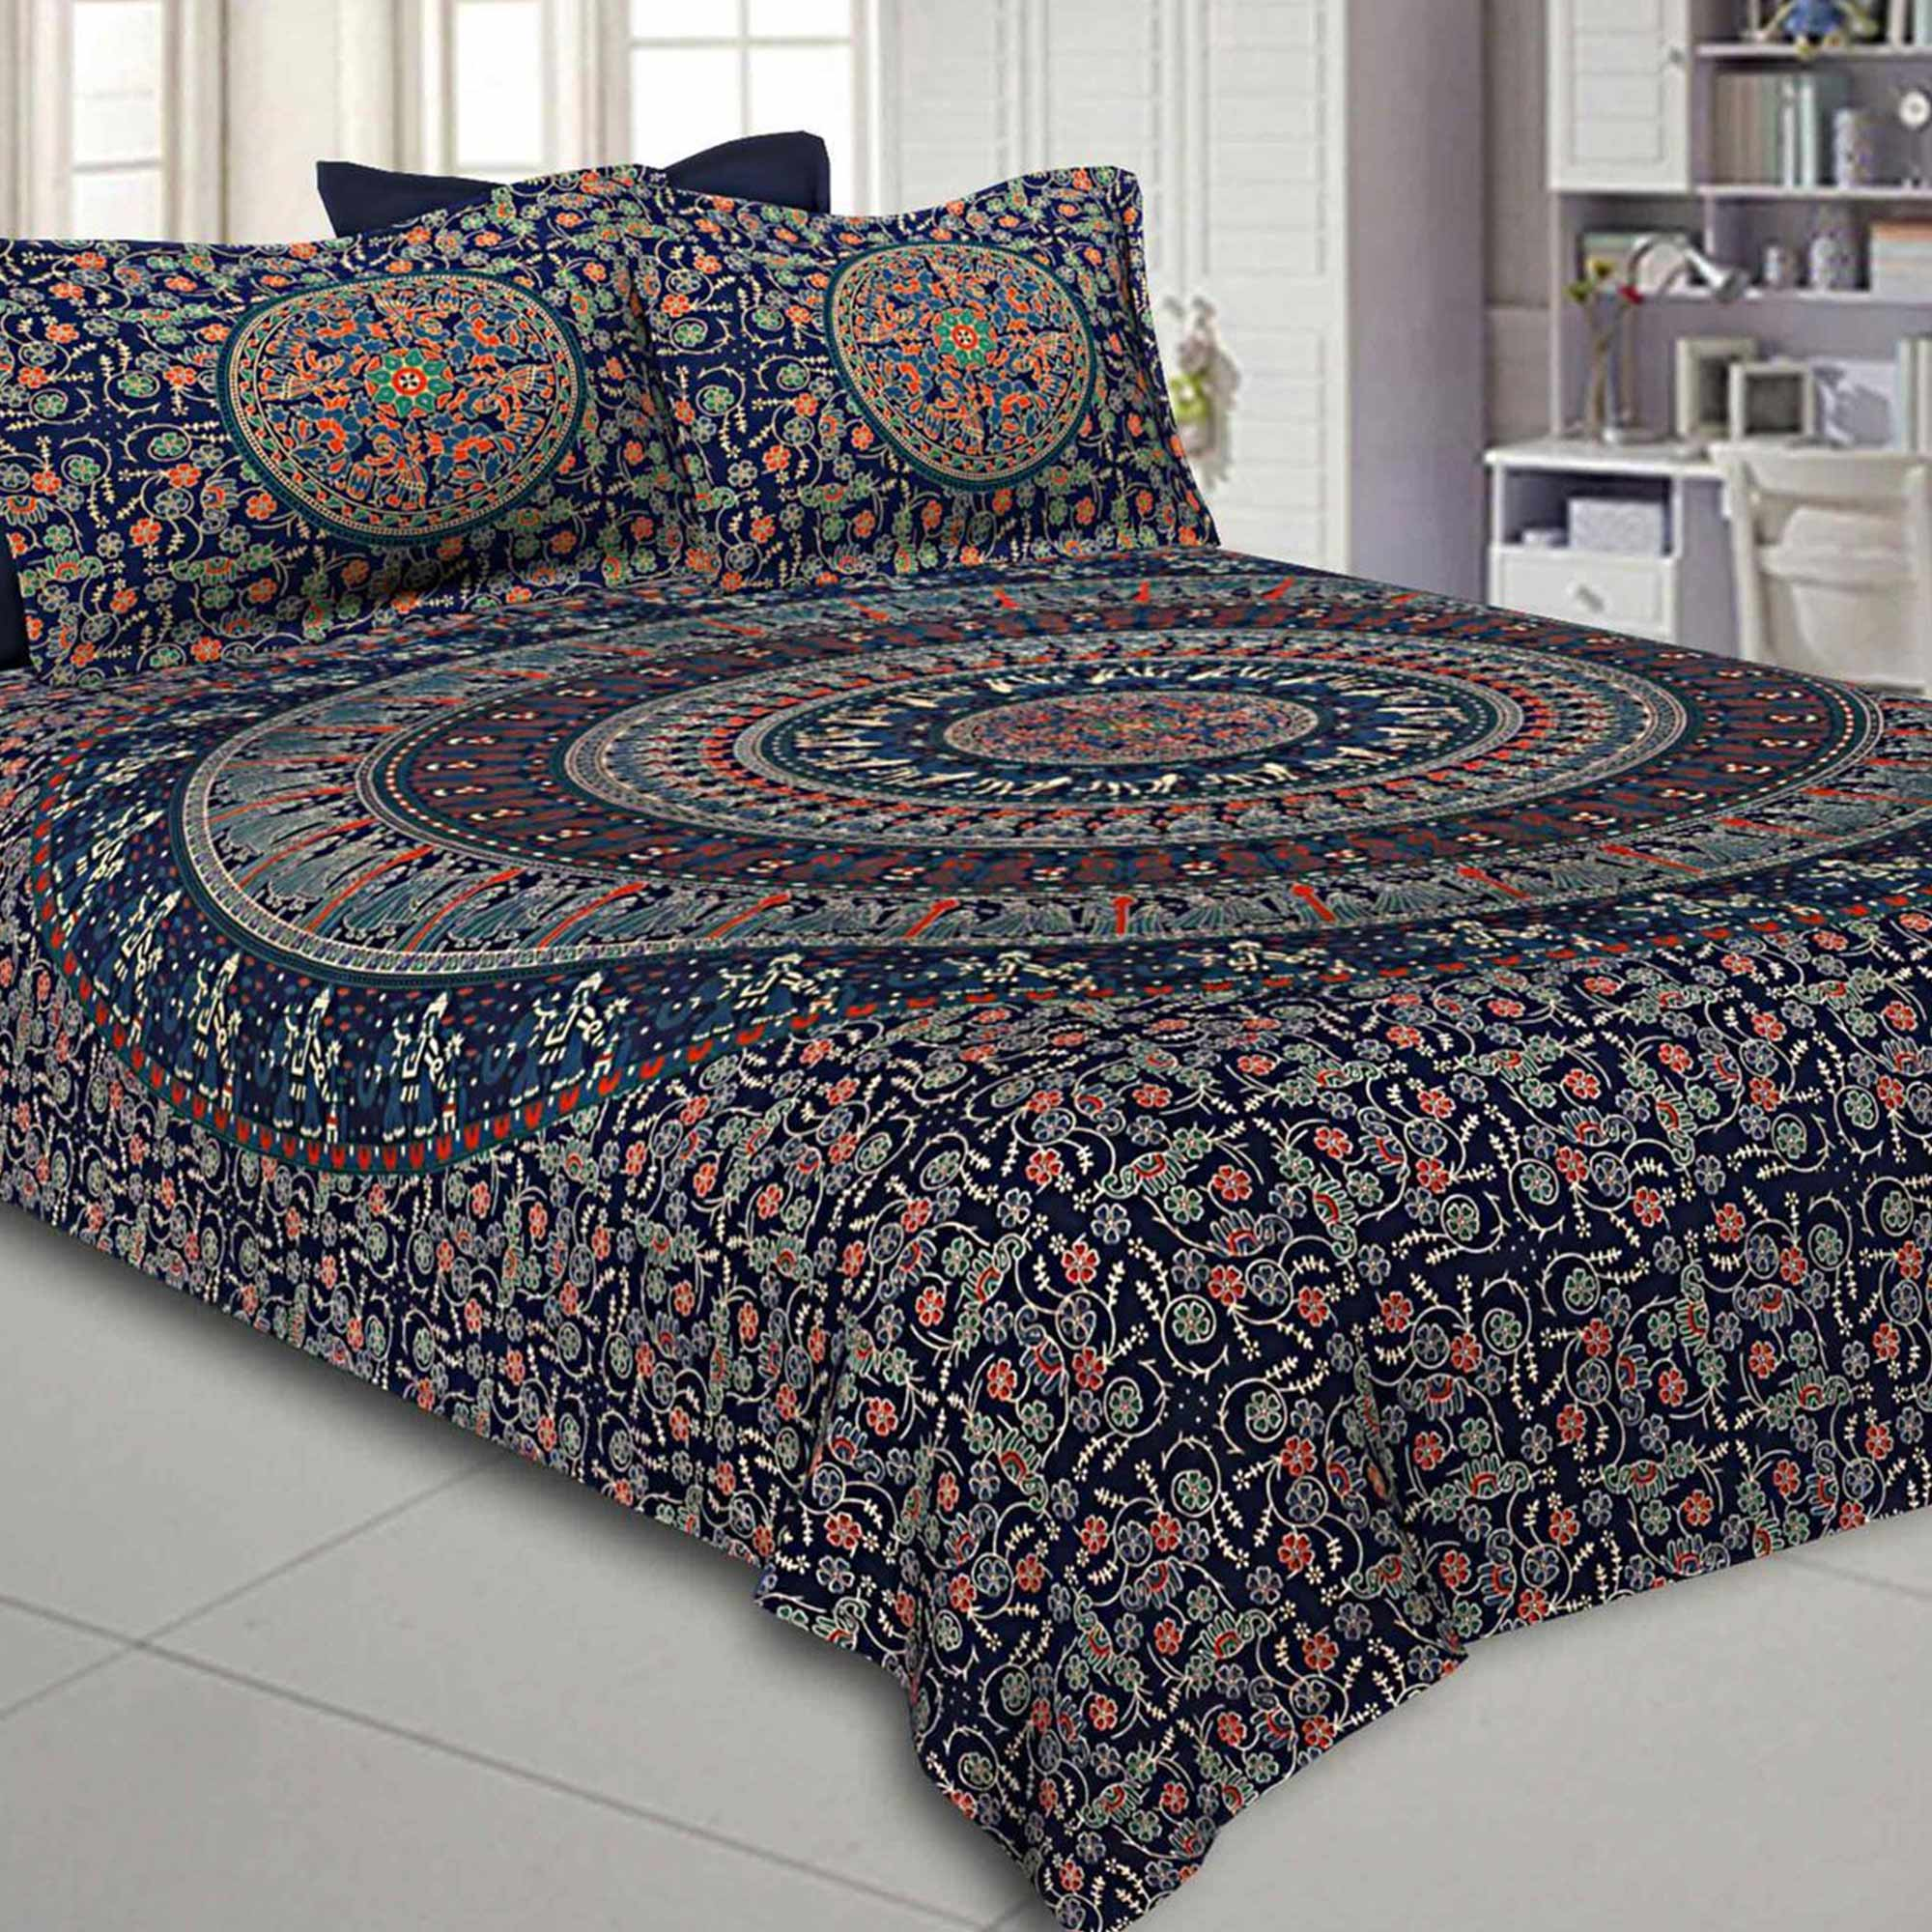 Sensational Printed Double Sized Bed Sheets With 2 Pillow Covers - Pack of 2